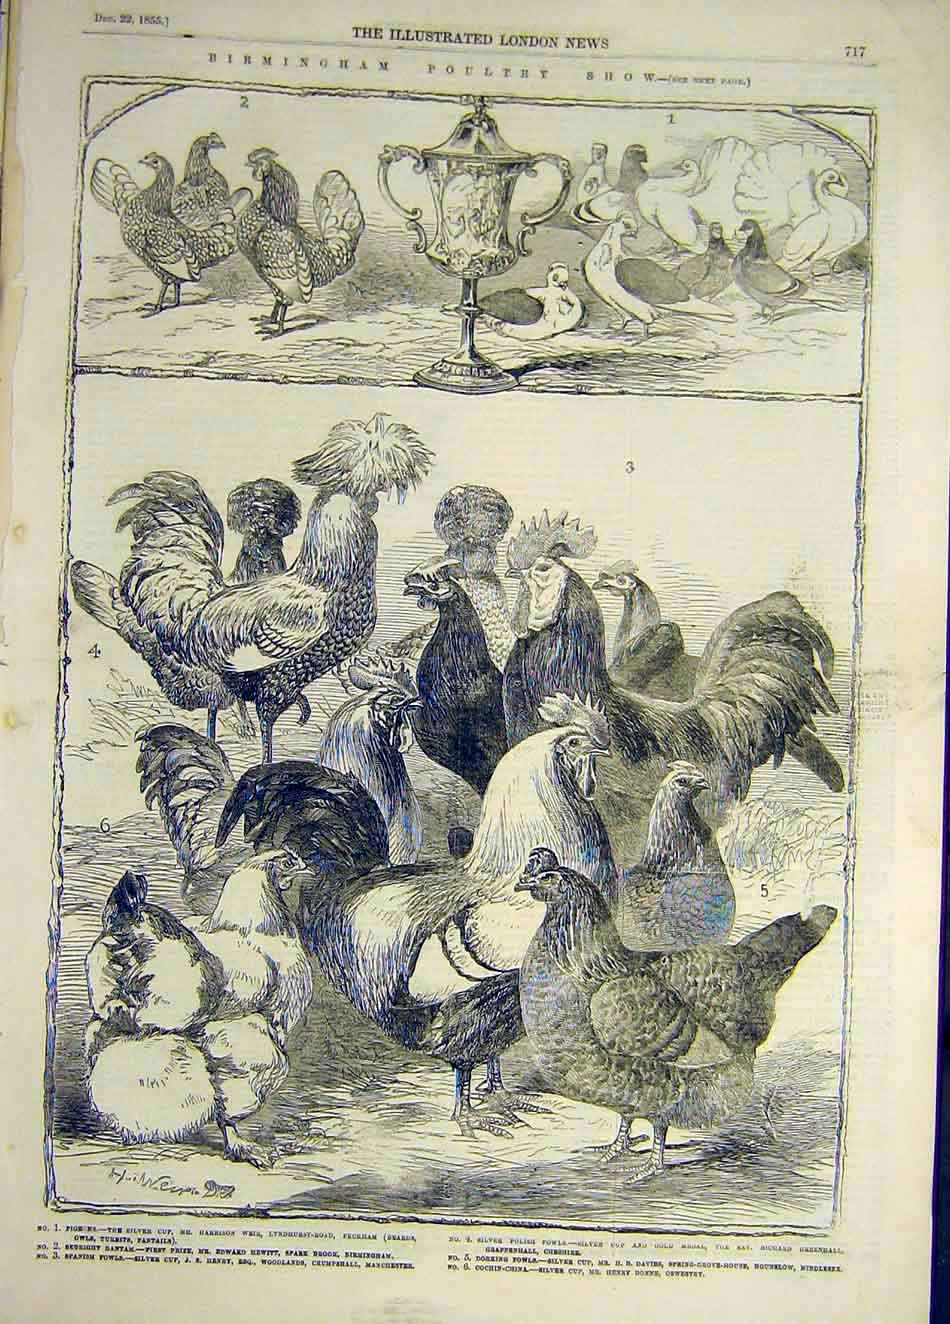 [Print 1855 Birmingham Poultry Show Cup Pigeons Chicken Duck 847921 Old Original]